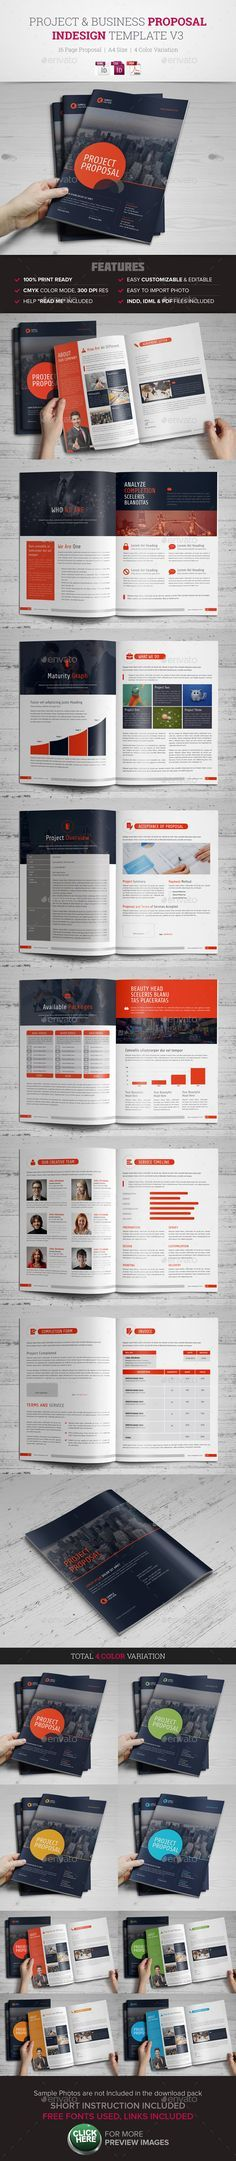 Best 25+ Business proposal ideas on Pinterest Business proposal - free online proposal template